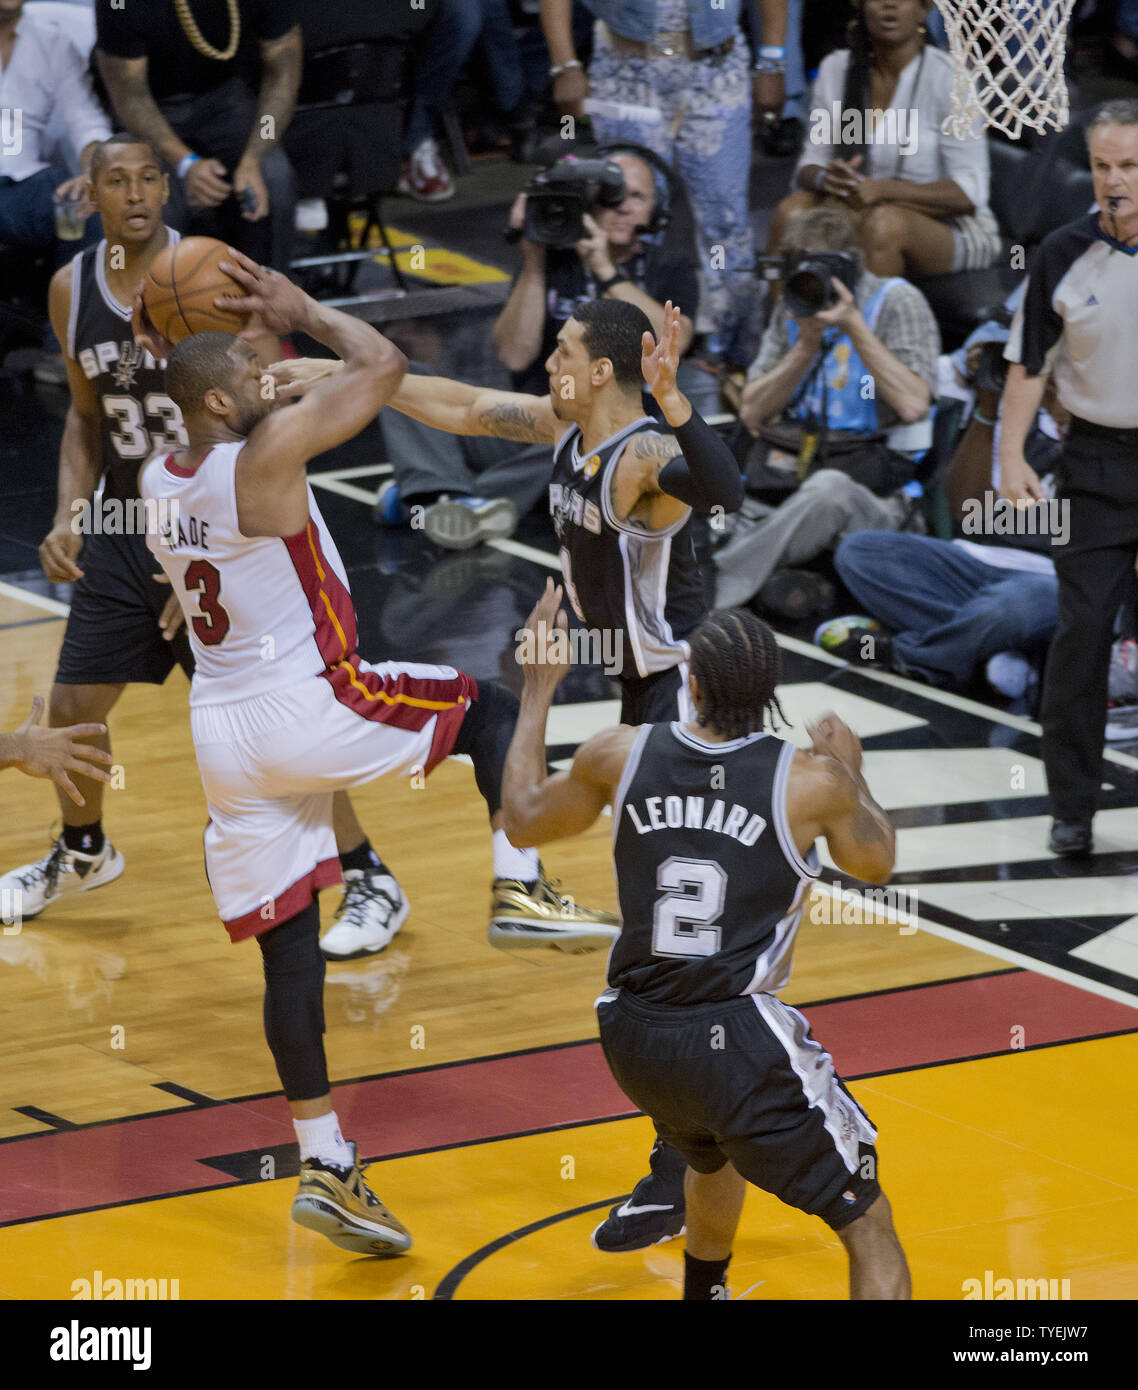 Miami Heat Dwyane Wade 3 Drives To The Basket On San Antonio Spurs Danny Green 4 In Game 4 Of The Nba Finals At The American Airlines Arena In Miami June 12